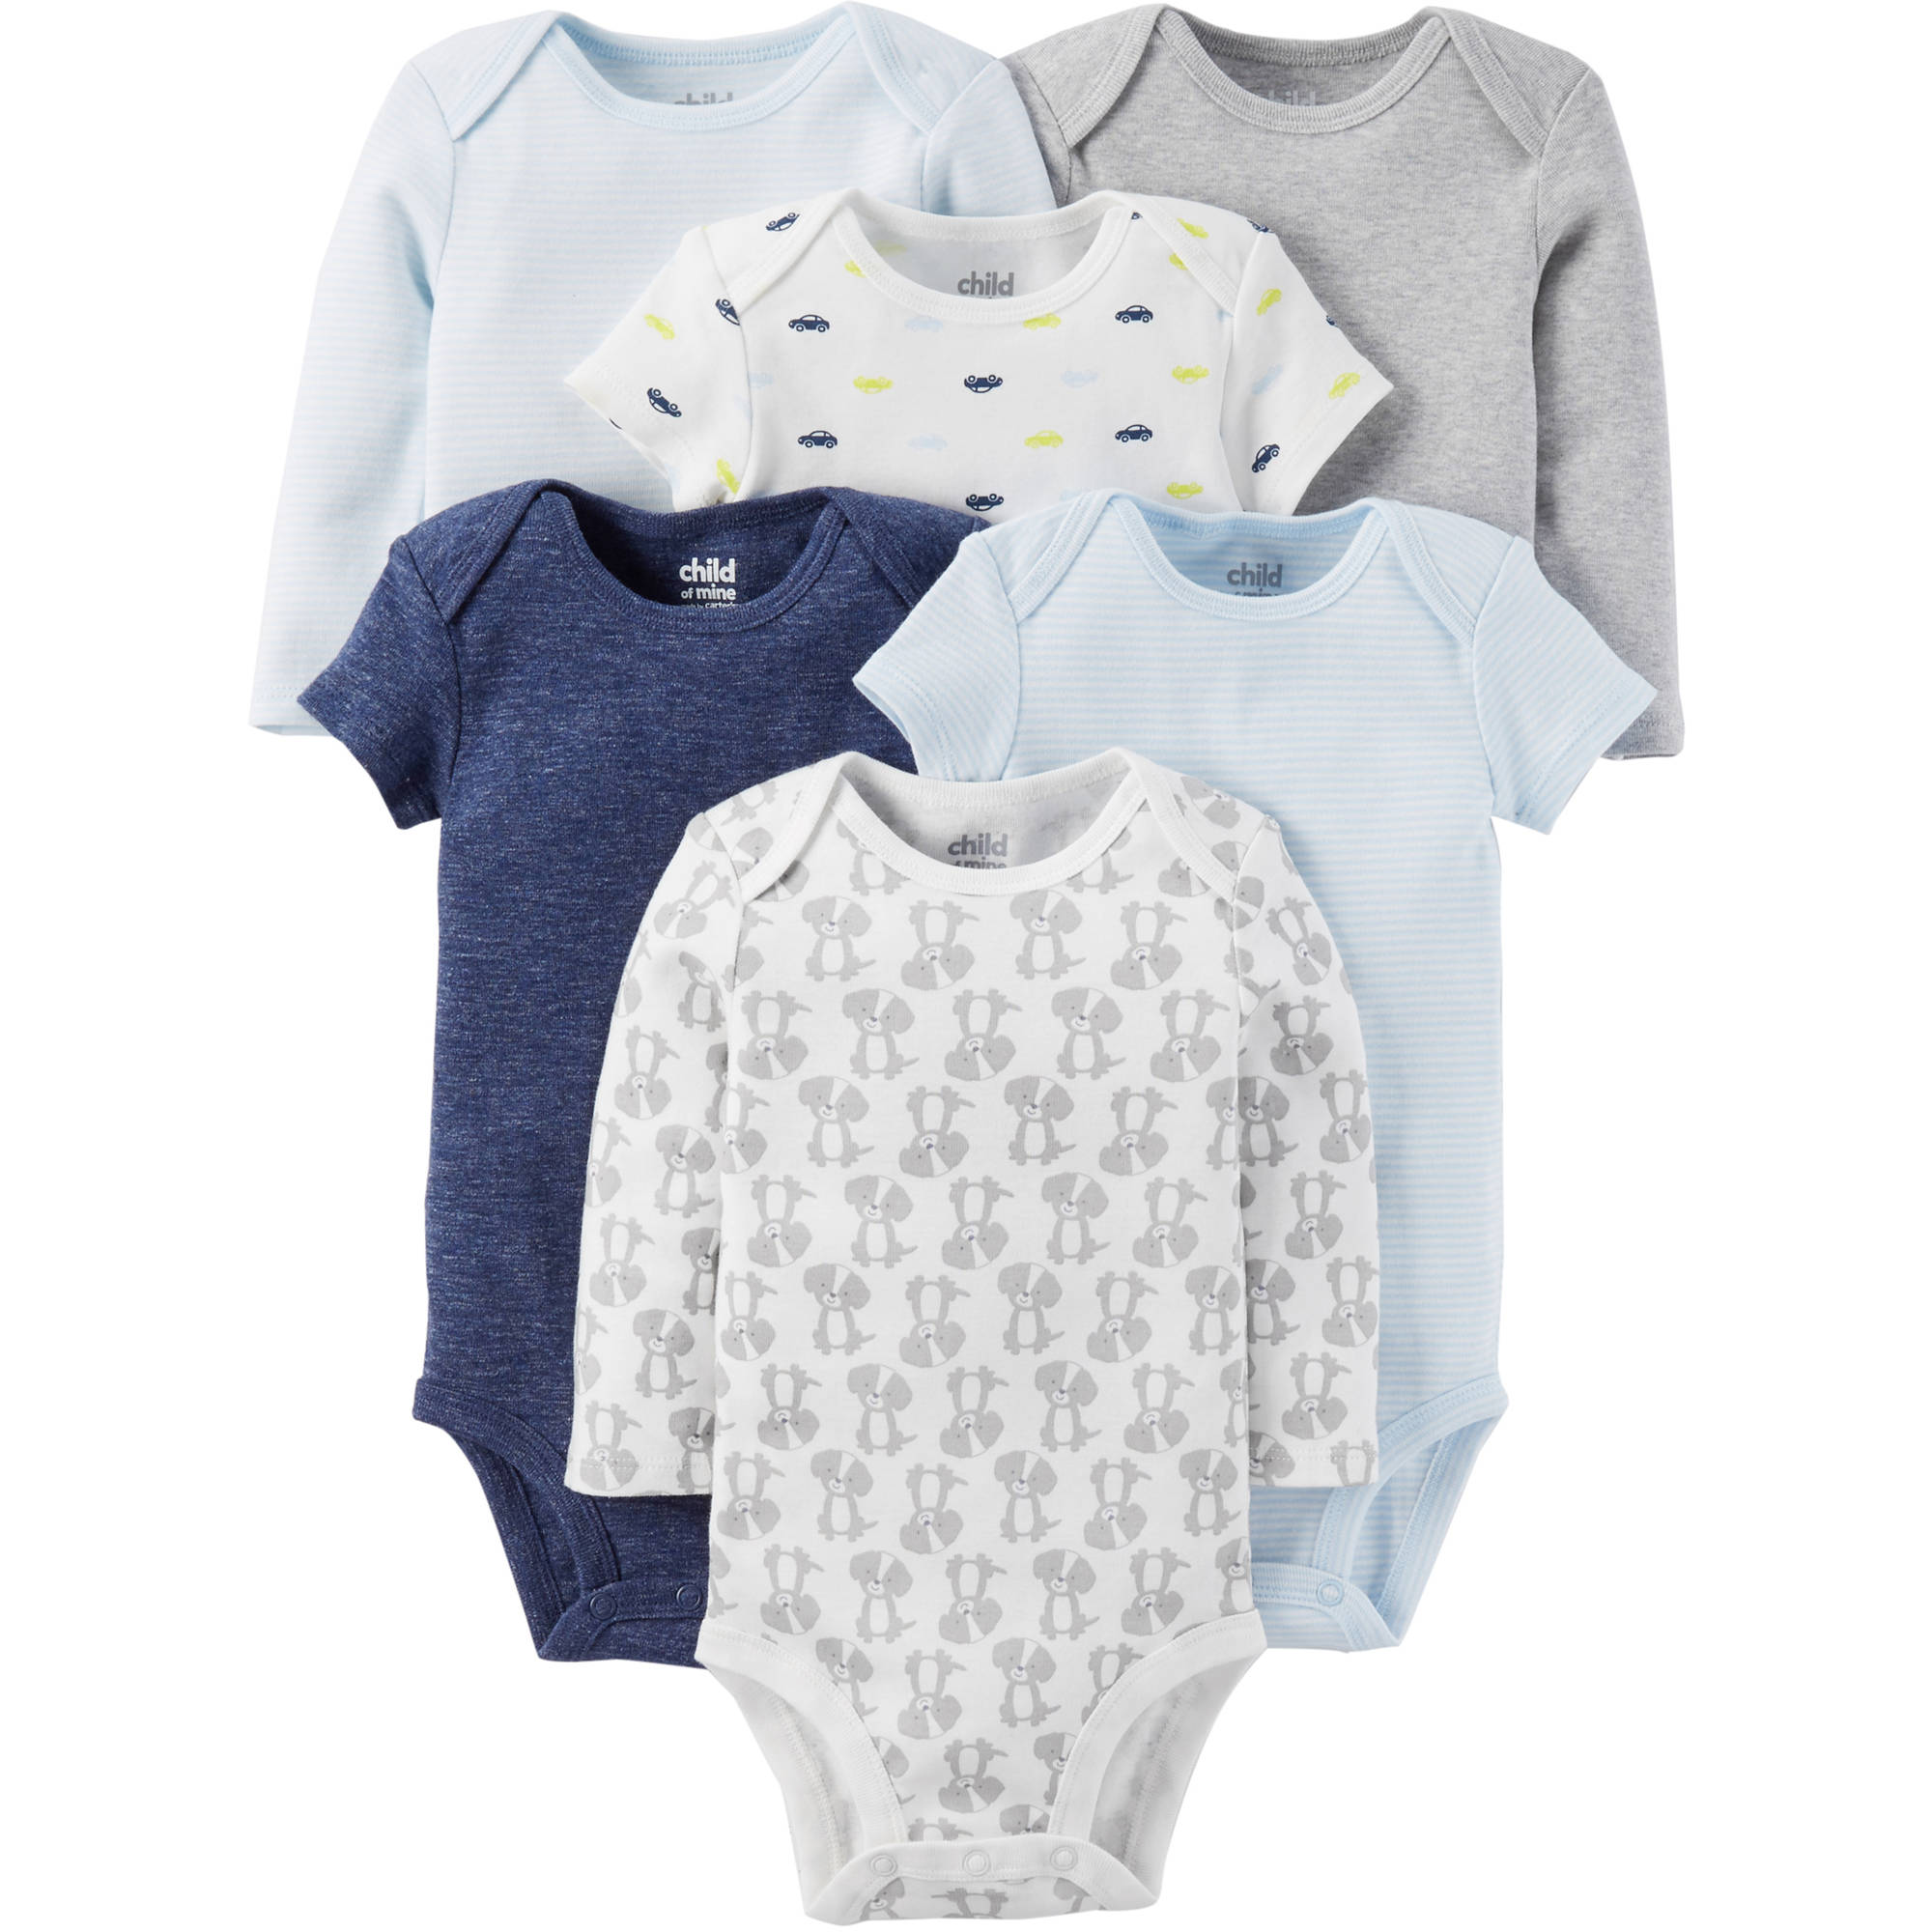 Child of Mine by Carter's Newborn Baby Boy Short and Longsleeve Bodysuit Set 6-Pieces